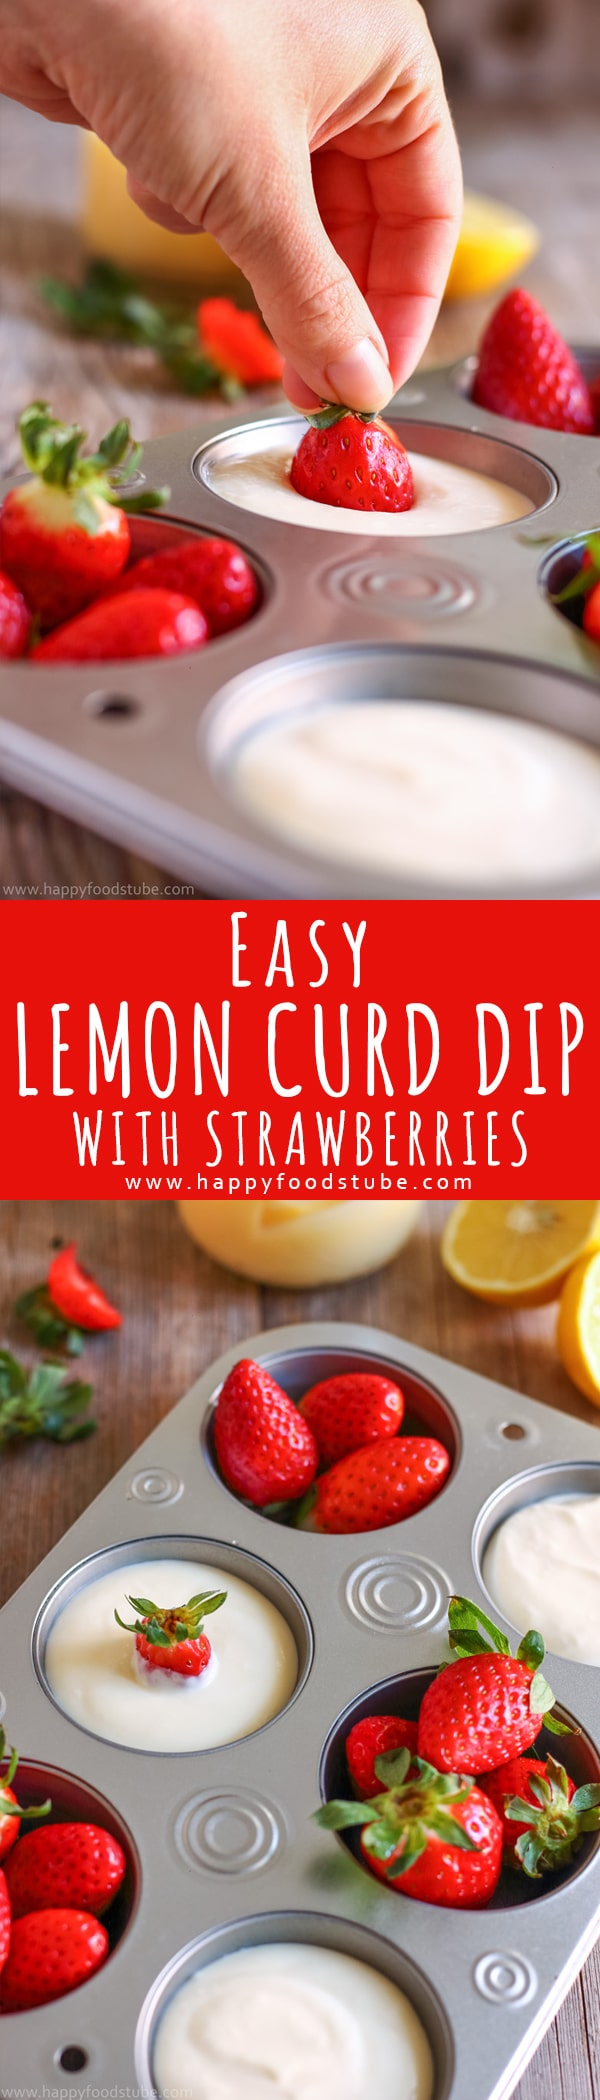 This easy lemon curd dip recipe is citrus flavored, only 3-ingredients and ready in less than 5-minutes. Easy to make fruit dip with sour cream. Perfect for picnics, parties and entertaining at home